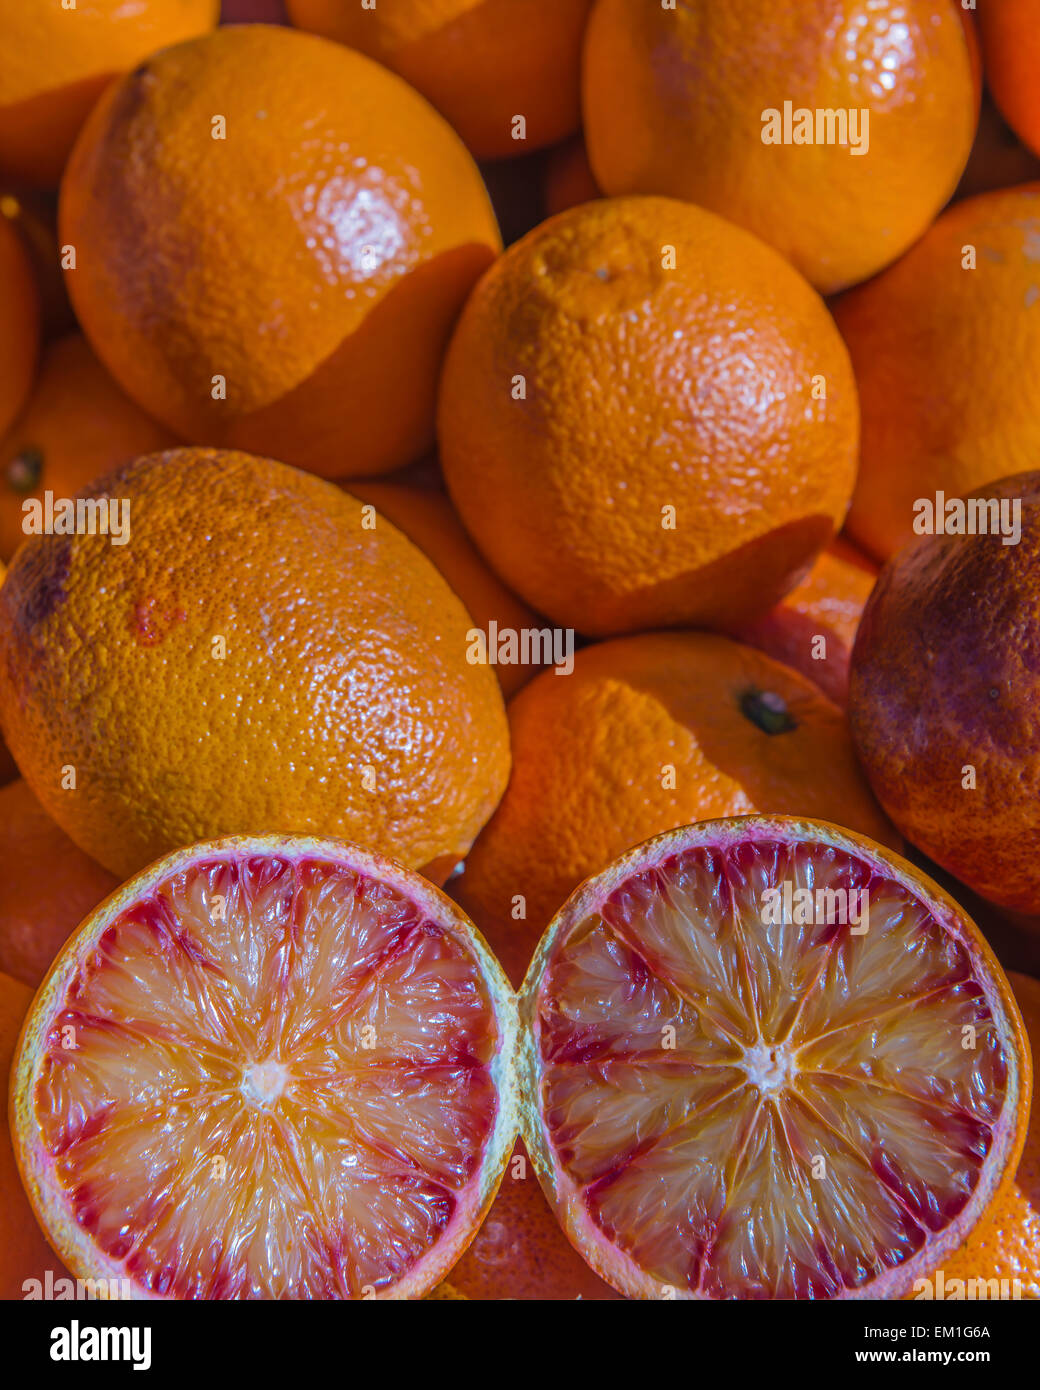 Fresh local blood oranges on display with one cut through displaying the juicy cross section - Stock Image